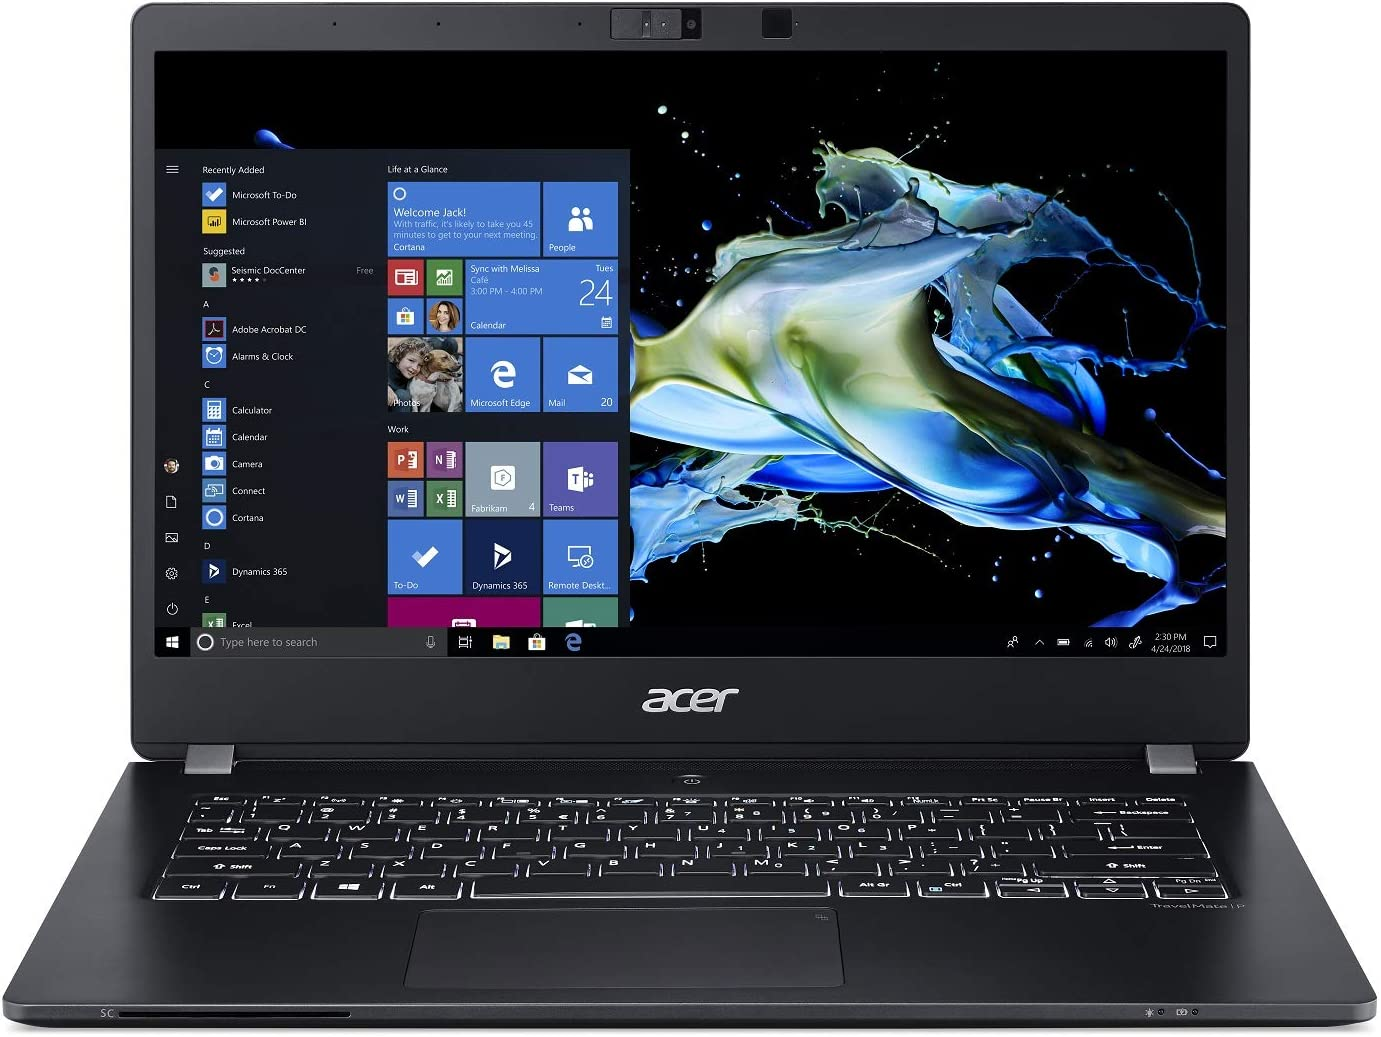 "Acer TravelMate P6 Thin & Light Business Laptop, 14"" FHD IPS Touch, Intel Core i7-8565U, NVIDIA MX250, 16GB DDR4, 512GB SSD, 12 Hrs Battery, Win 10 Pro, TPM 2.0, Mil-Spec, FPR, TMP614-51TG-792V"